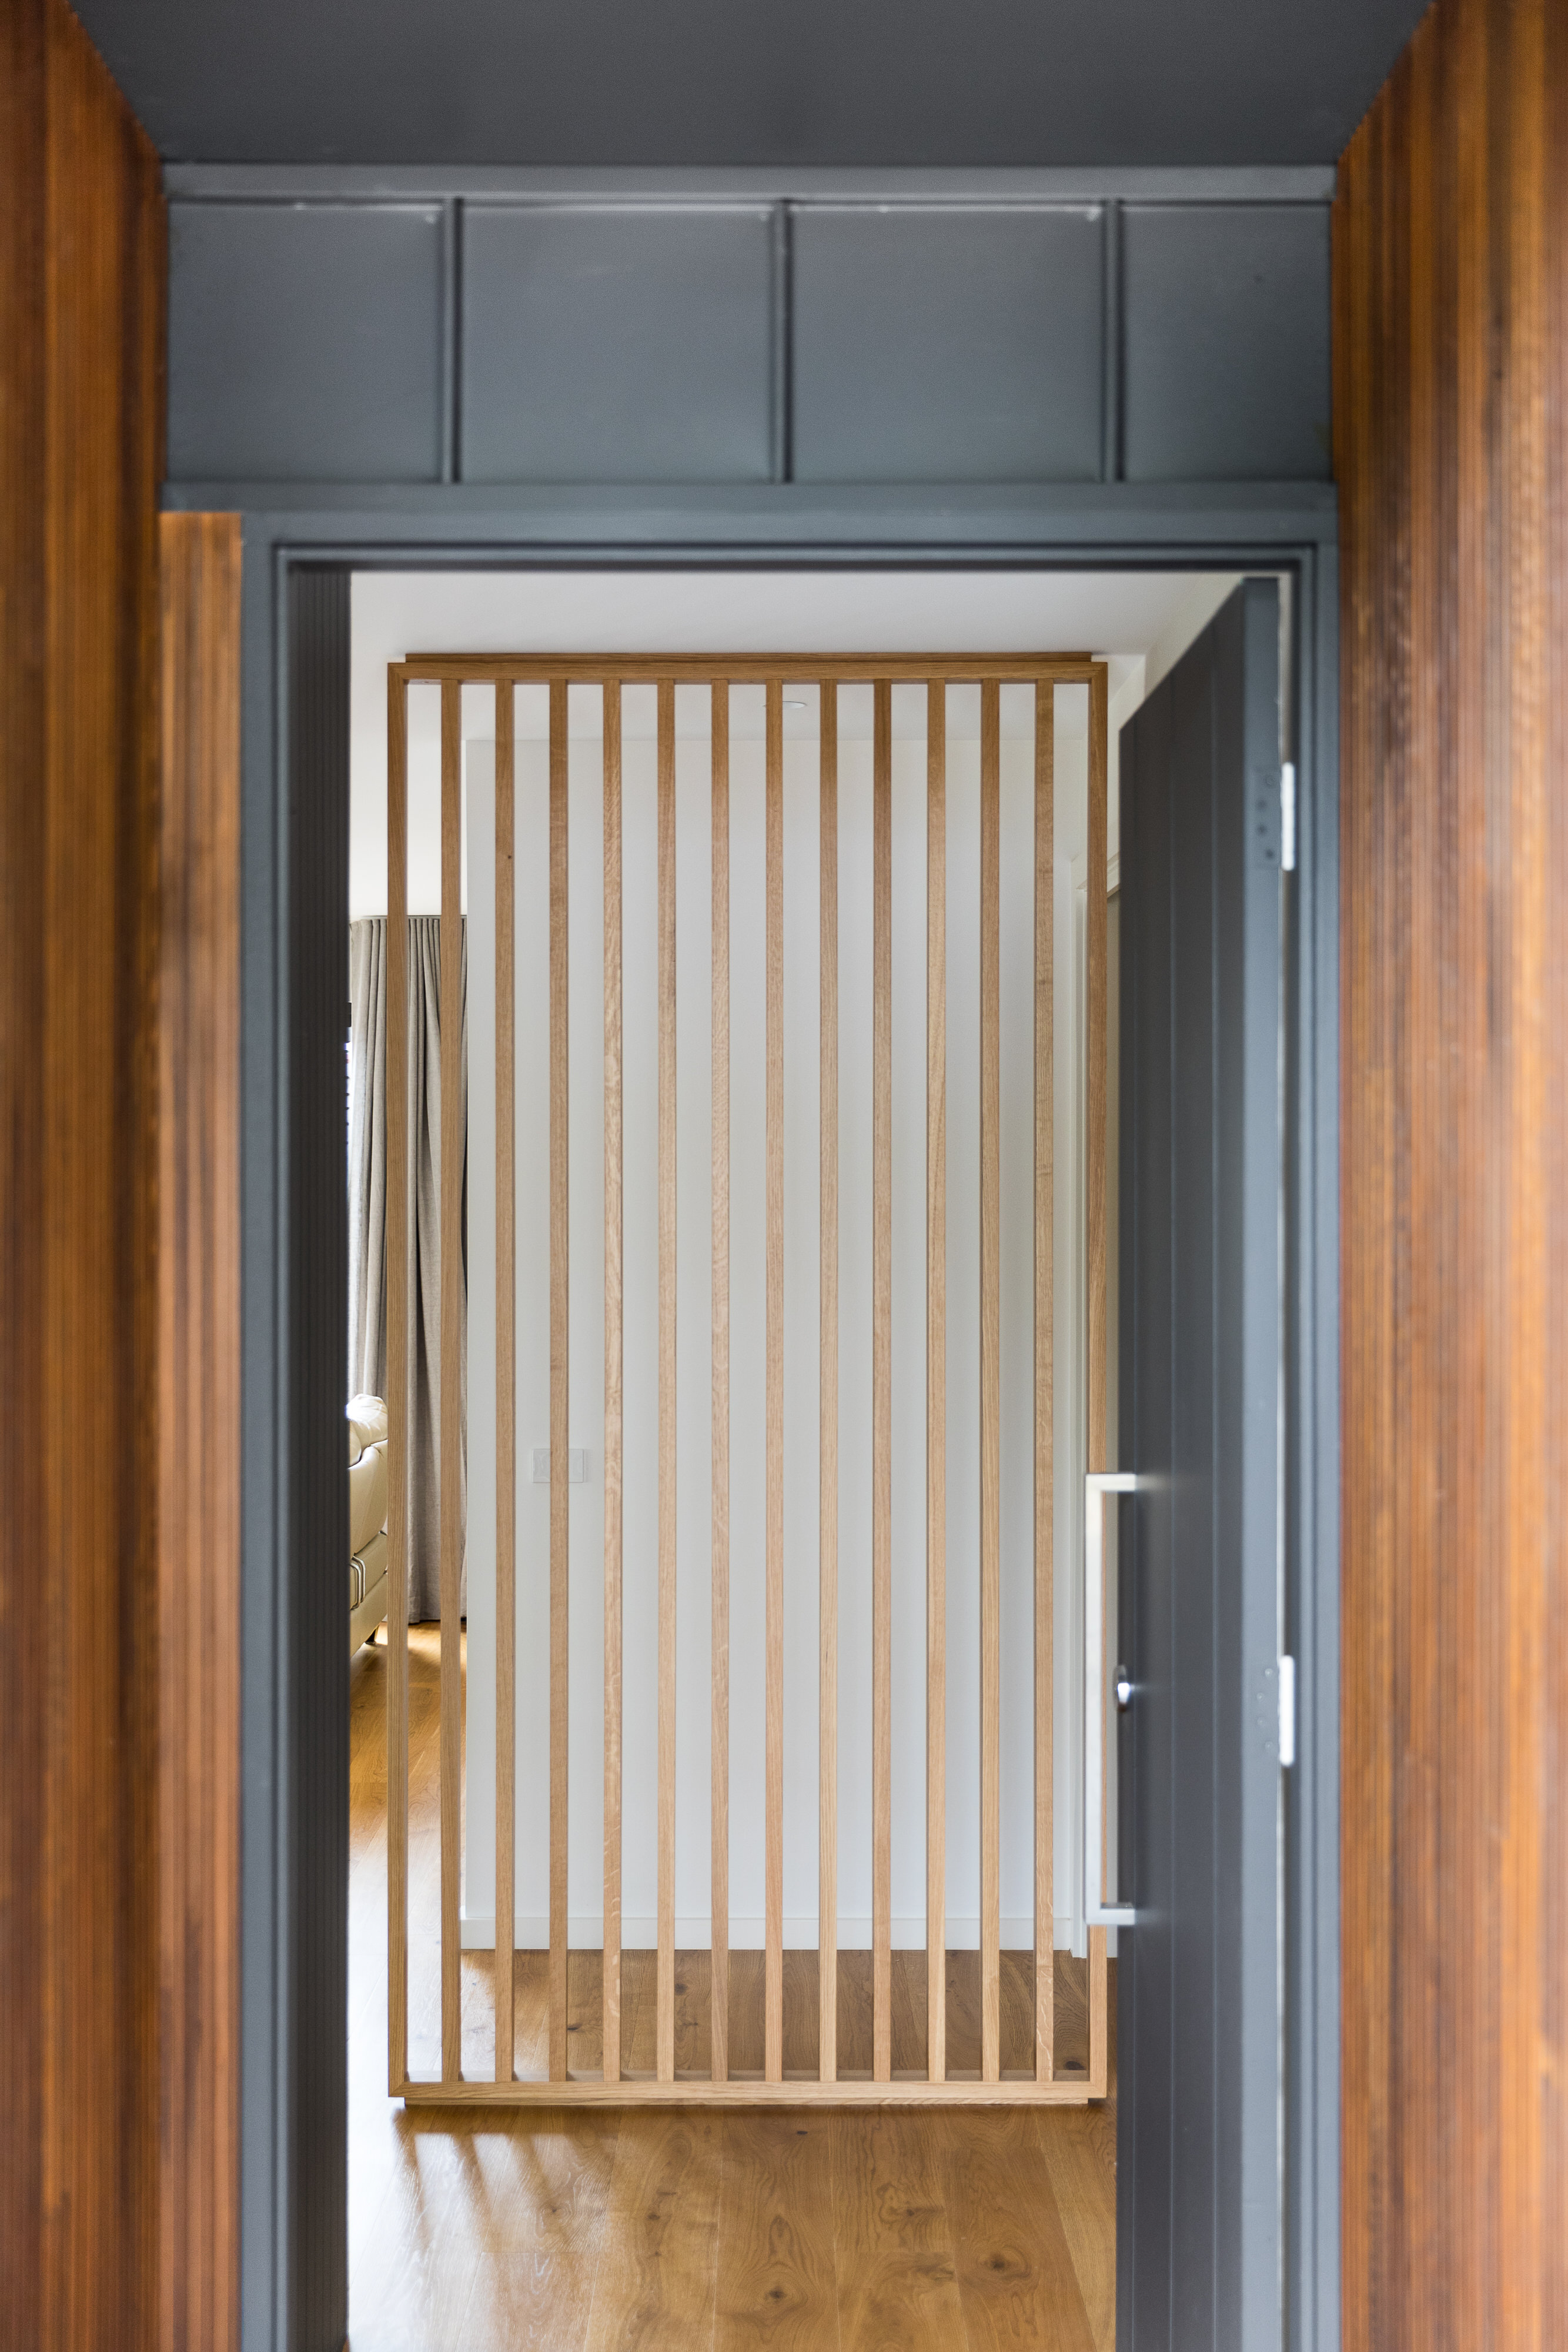 Open front door view featuring slat timber screen